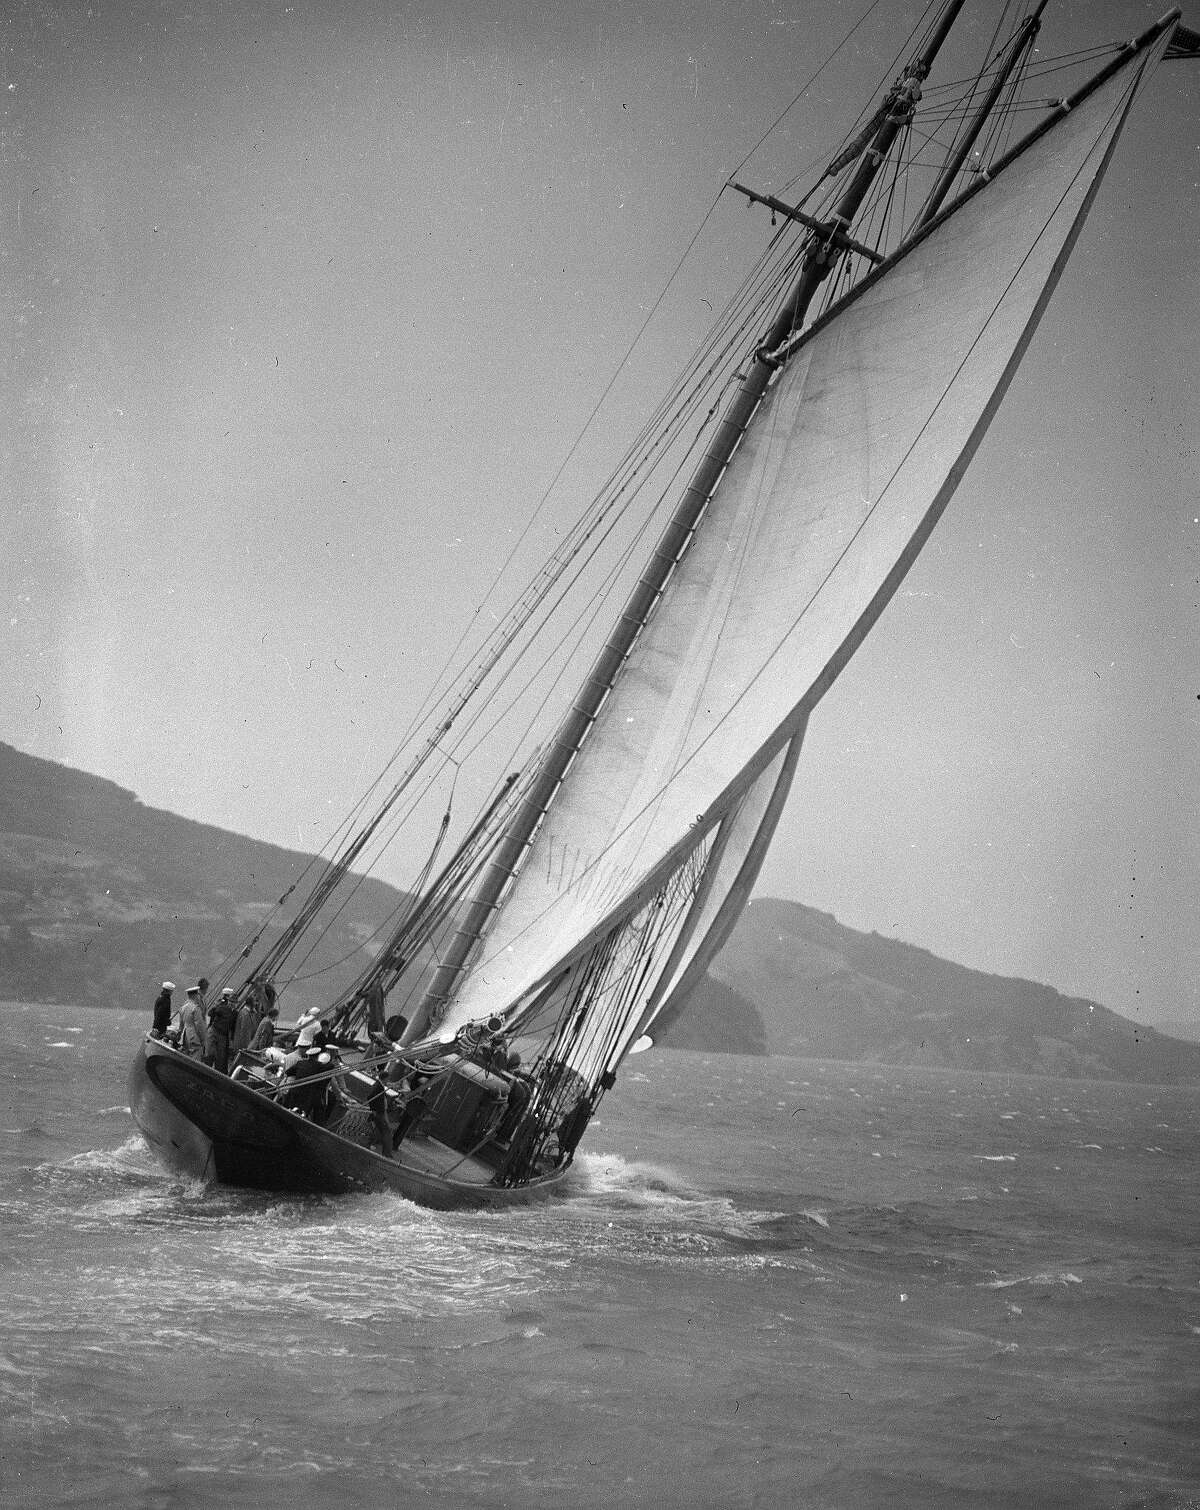 Schooner Zaca, August 1942, in WWII service with the US Navy. The 118' schooner was designed by Garland Rotch for Templeton Crocker, grandson of the railroad baron. She was built in Sausalito, California by the Nunes Brothers Boat and Ways Co. and launched in 1930. Crocker, with Rotch as captain, took the vessel around the world. In 1942 the Navy took the schooner for defense purposes. After the war Errol Flynn owned the boat and the vessel was know for wild parties. After Flynn's death in 1959, the boat deteriorated in the Mediterranean area but was finally saved and elegantly restored by Italian Roberto Memmo and home ported in Monaco. Scanned Chronicle file negatives, one packet dated August, 1942